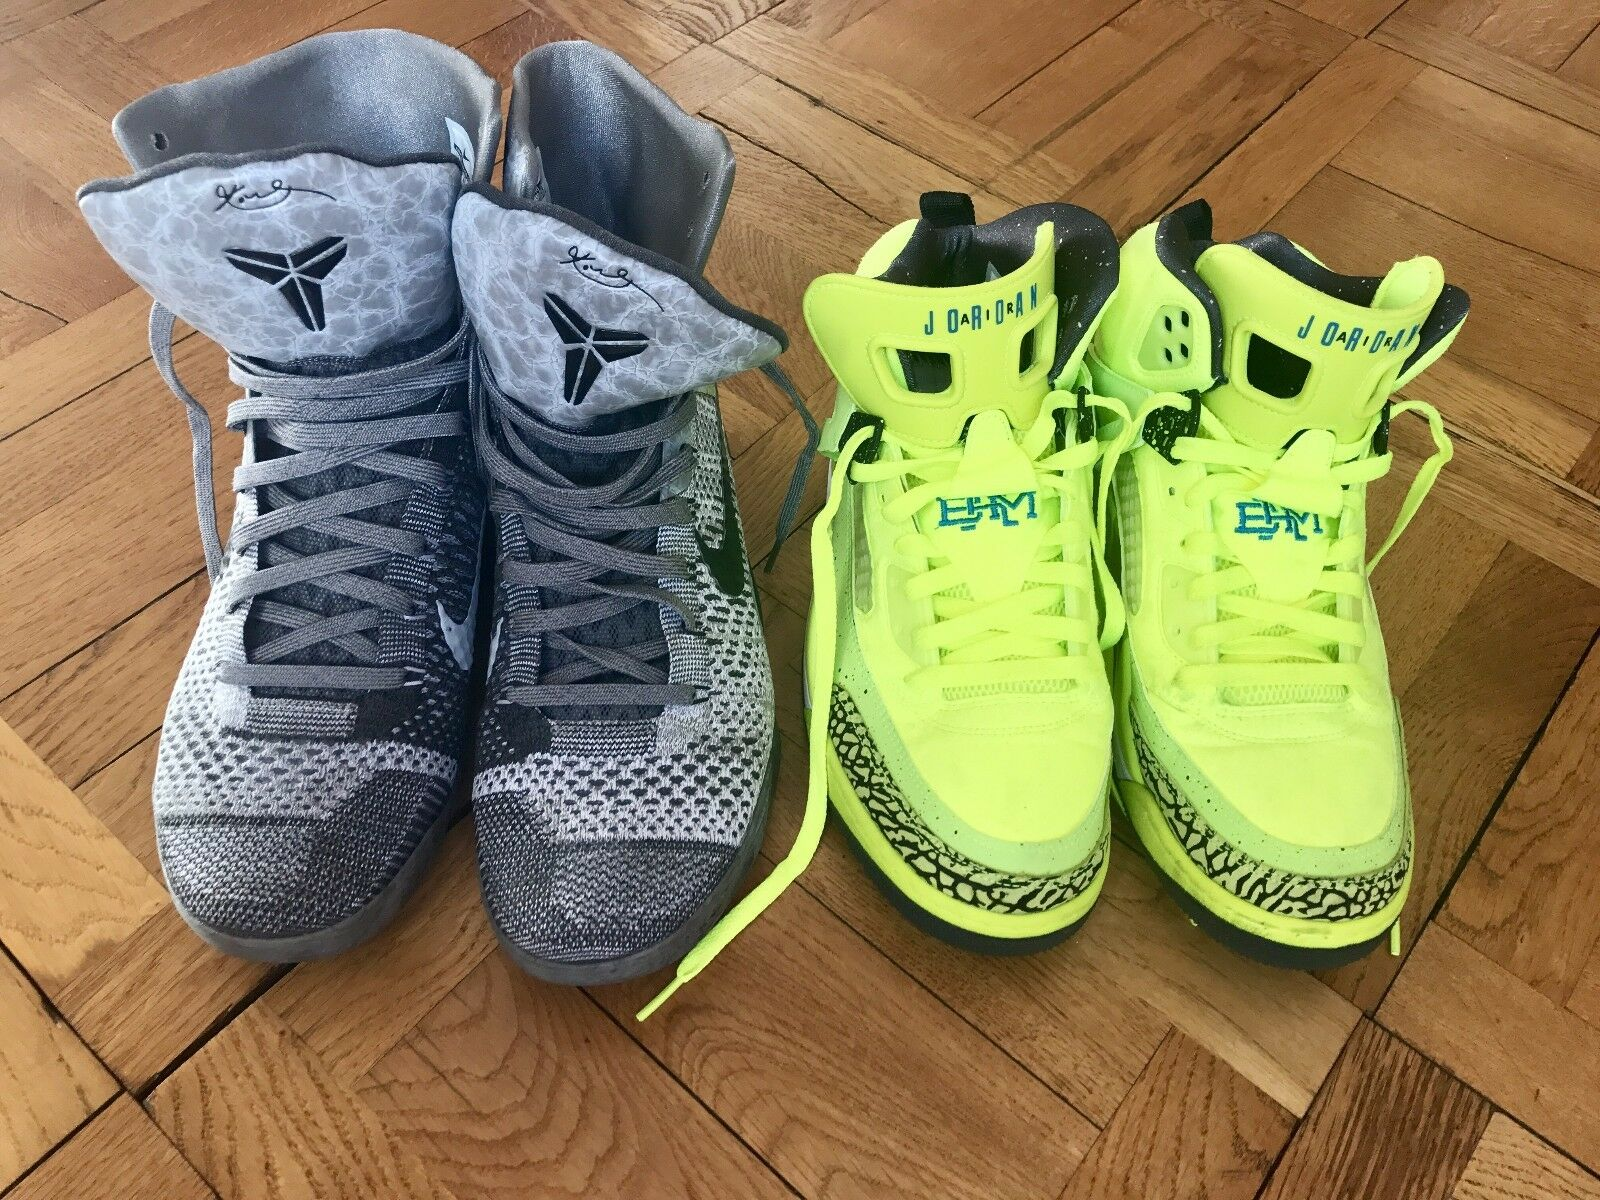 Nike lot Air Jordan Spizike Spike BHM volt + Nike Kobe 9 Elite - 630847 003 New shoes for men and women, limited time discount